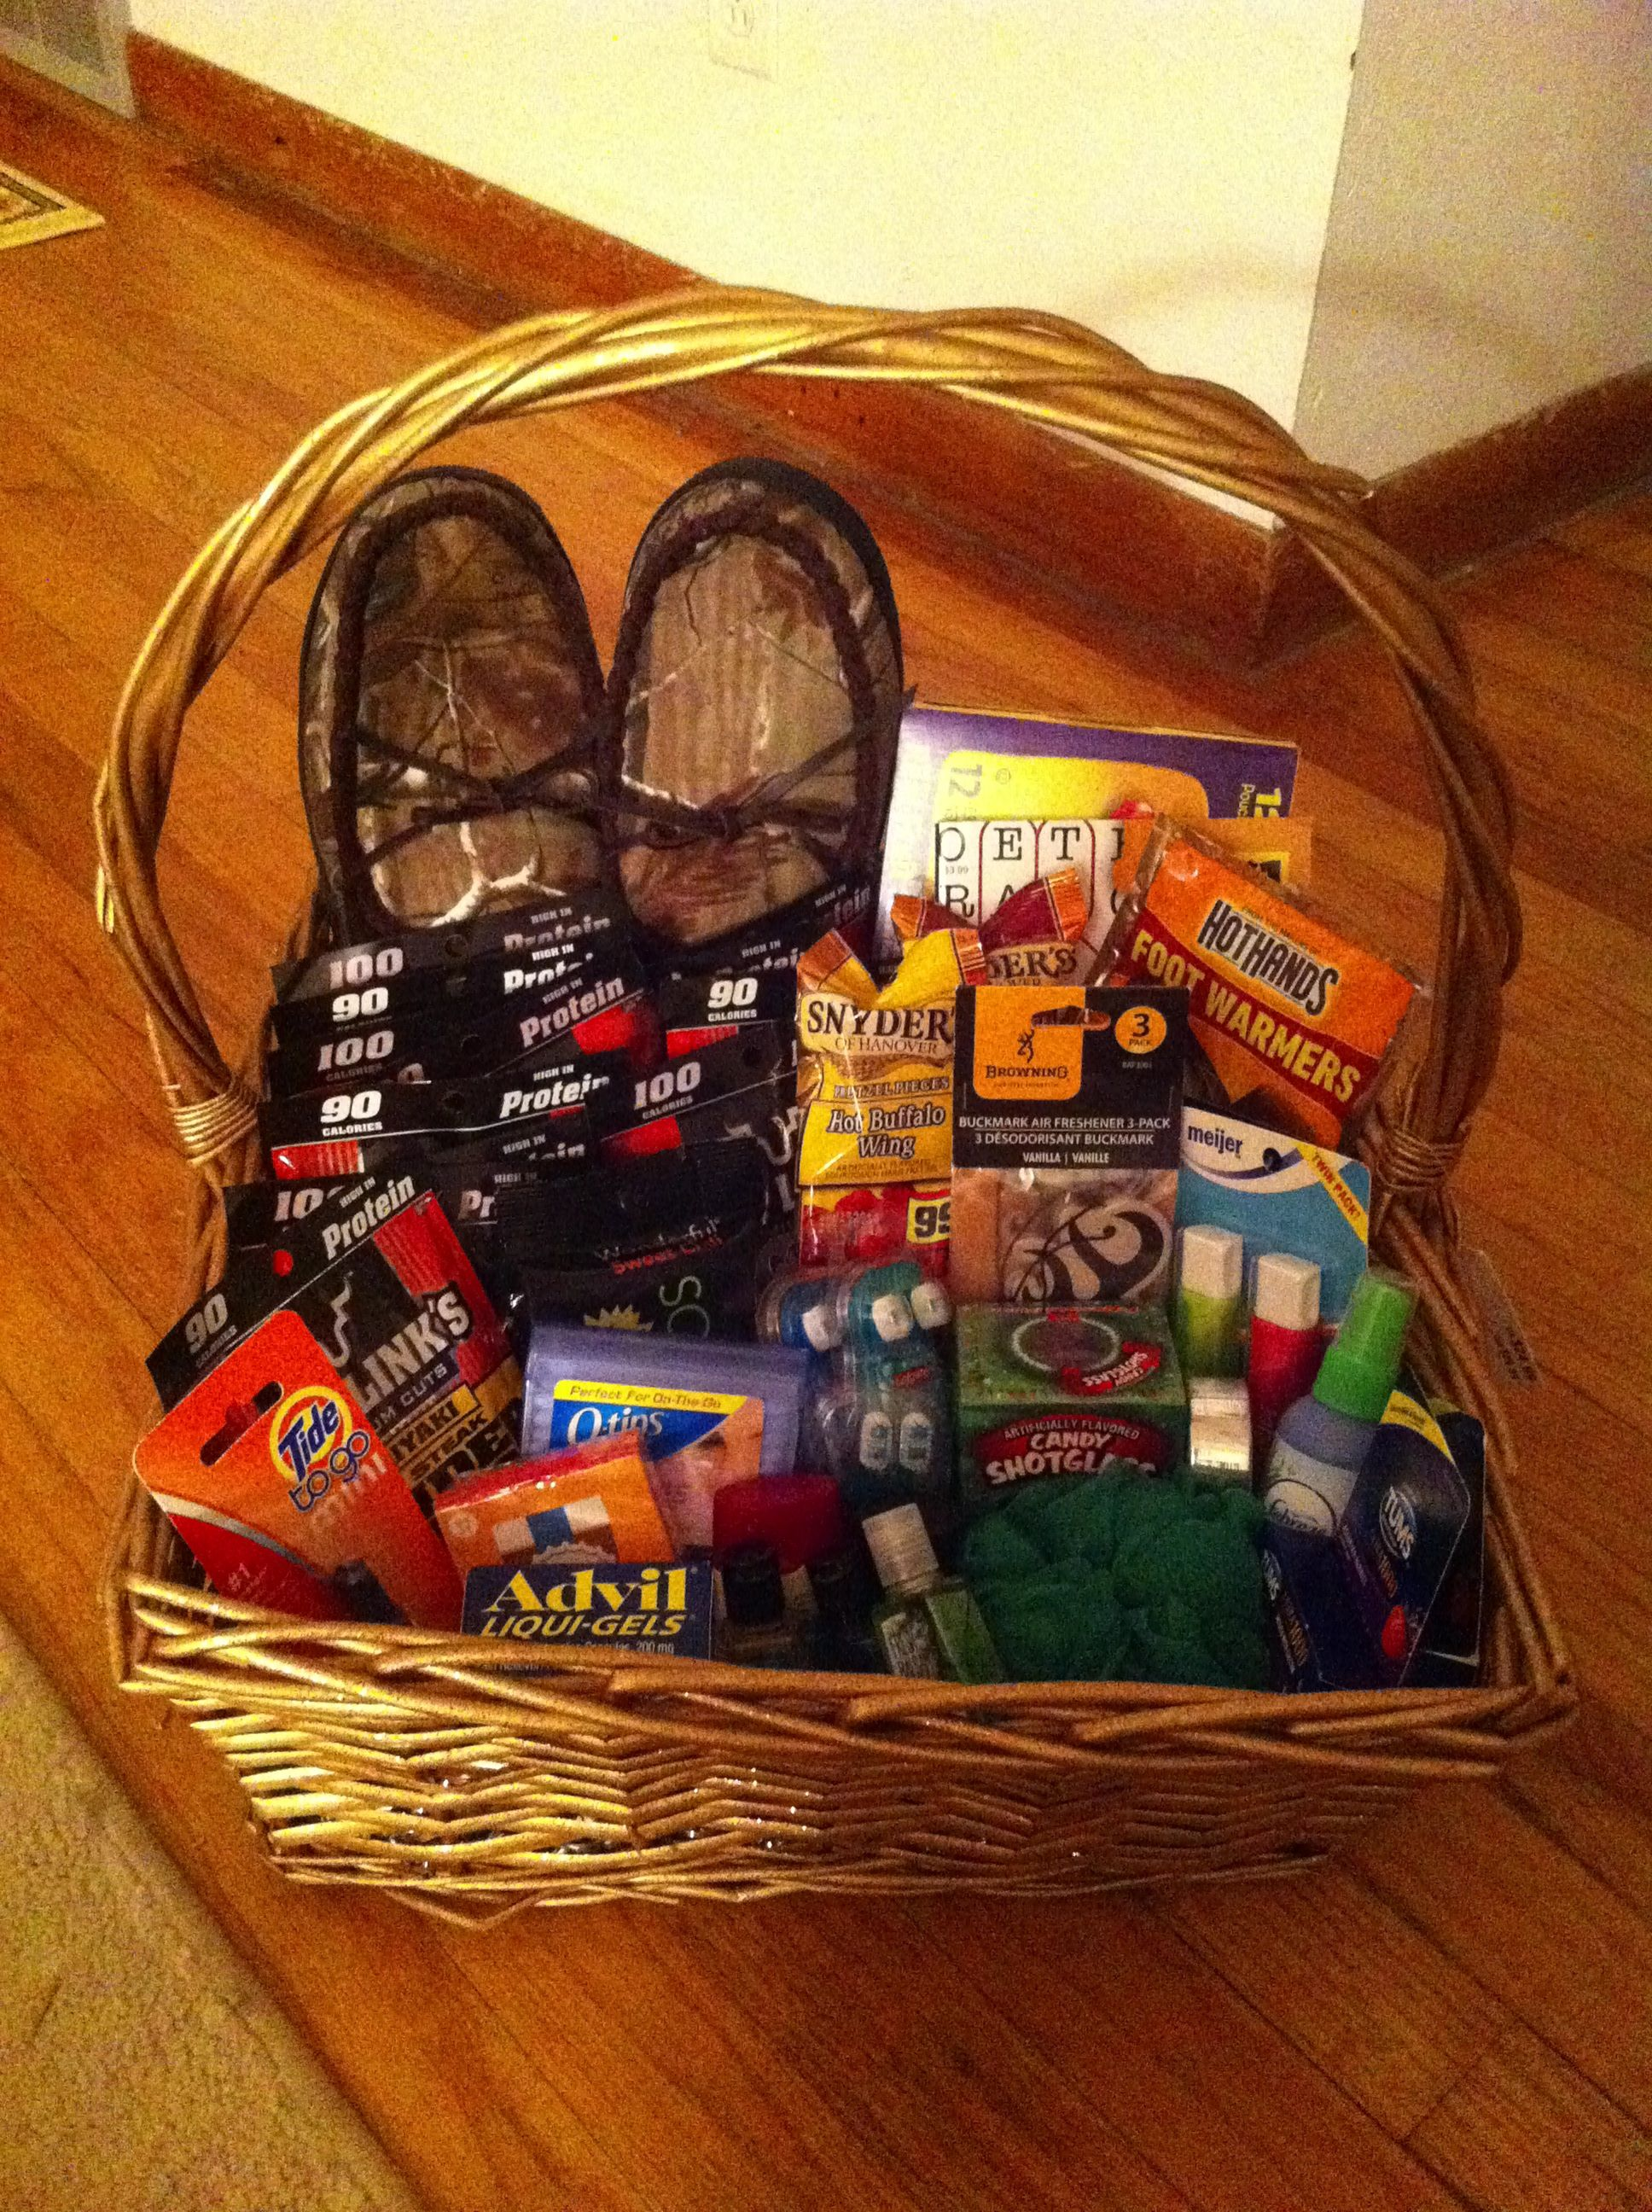 Gift basket for a truck driver or boyfriend all the essentials gift basket for a truck driver or boyfriend all the essentials handfoot warmers travel size toiletries beef jerky nuts word search duct tape negle Images